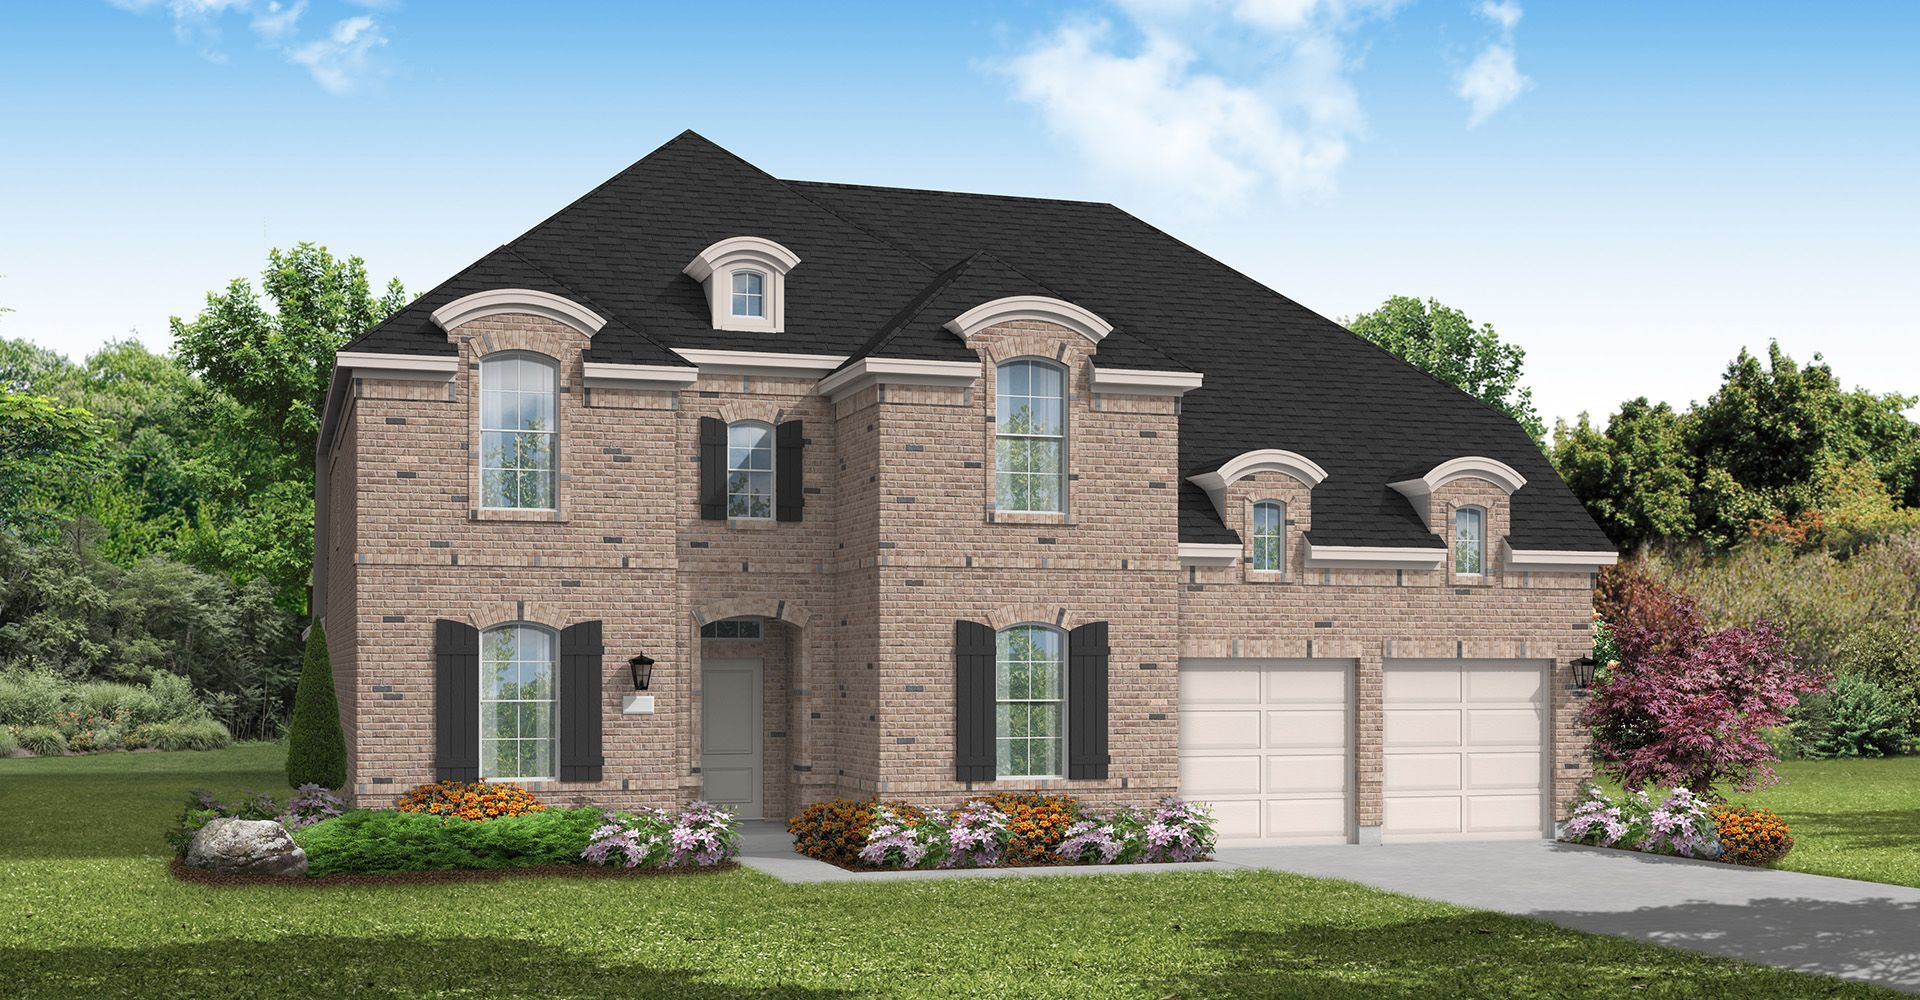 Exterior featured in the Bevil Oaks By Coventry Homes in Dallas, TX